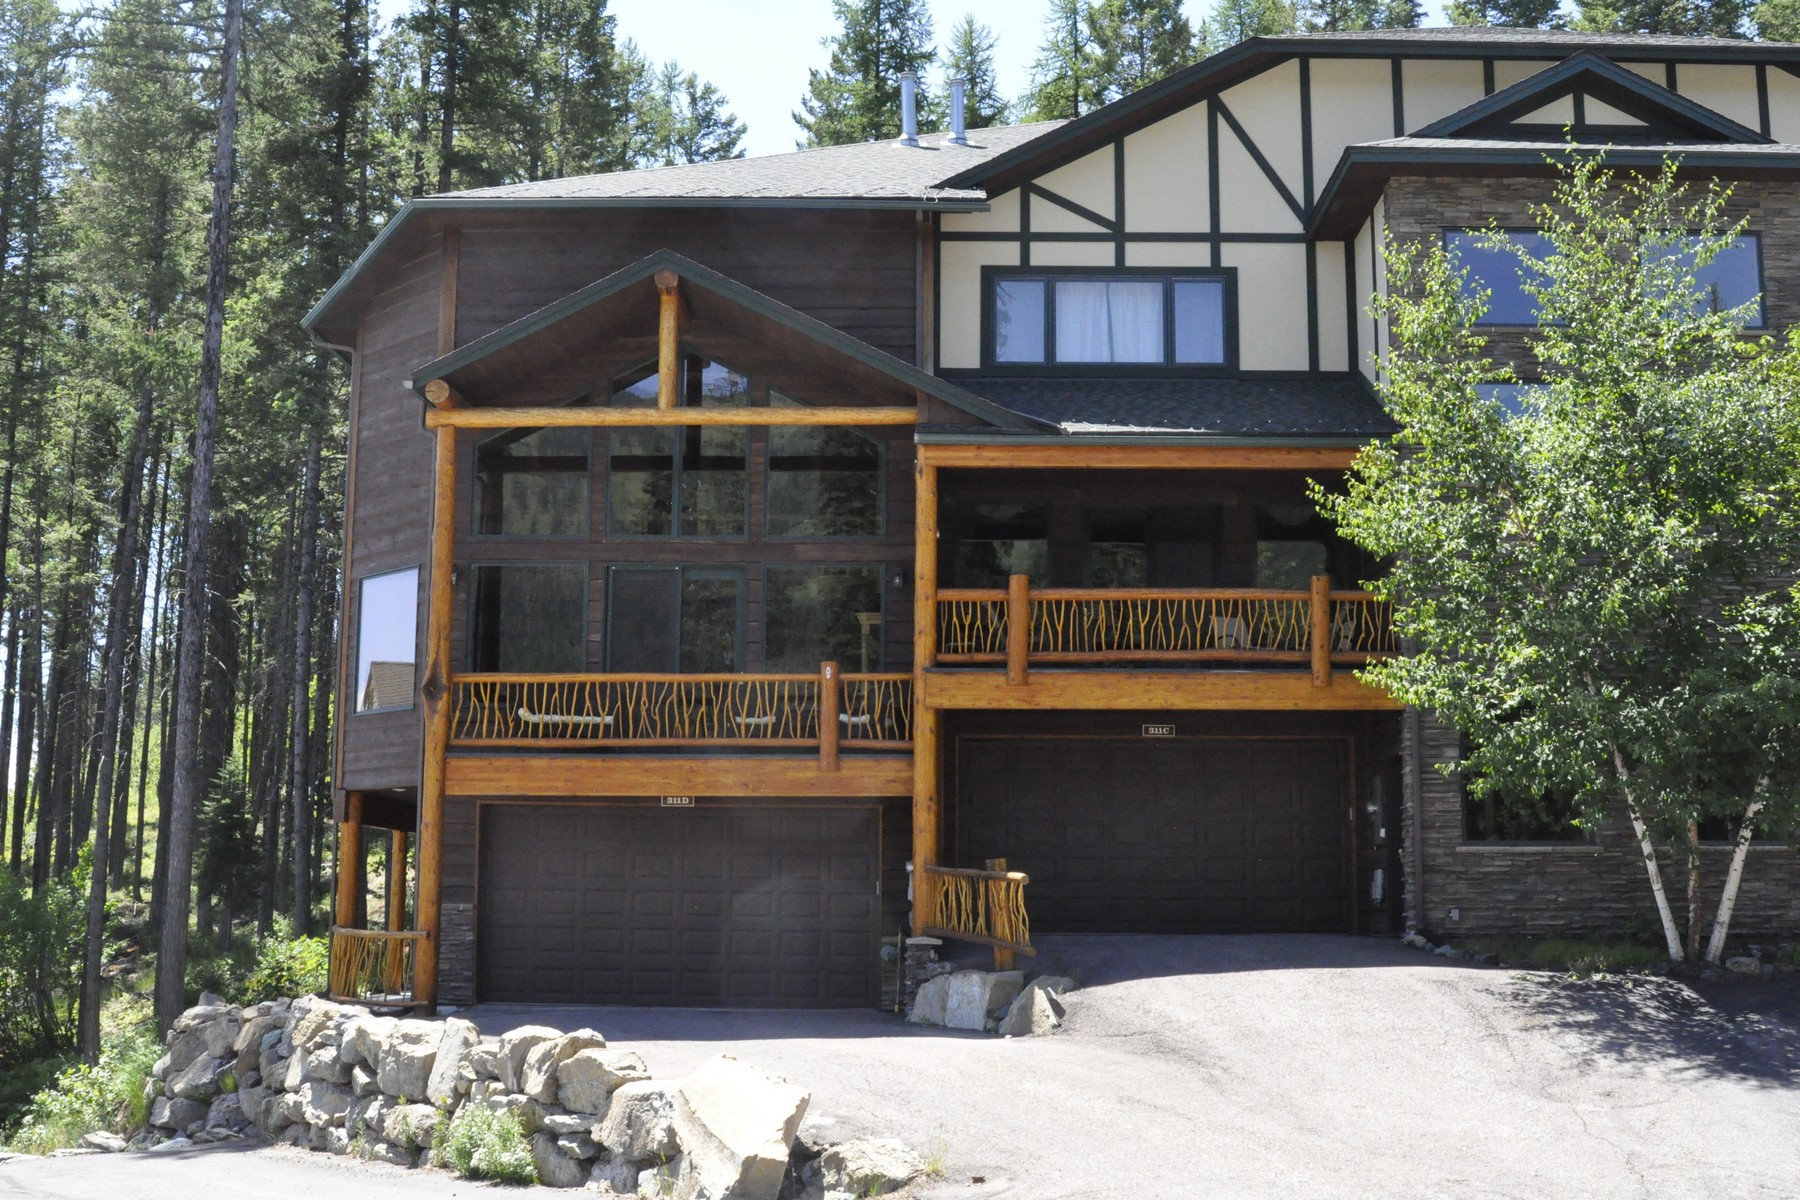 共管物業 為 出售 在 Large Condo at Whitefish Mountain Resort 311 Wood Run Dr Whitefish Mountain Resort, Whitefish, 蒙大拿州, 59937 美國